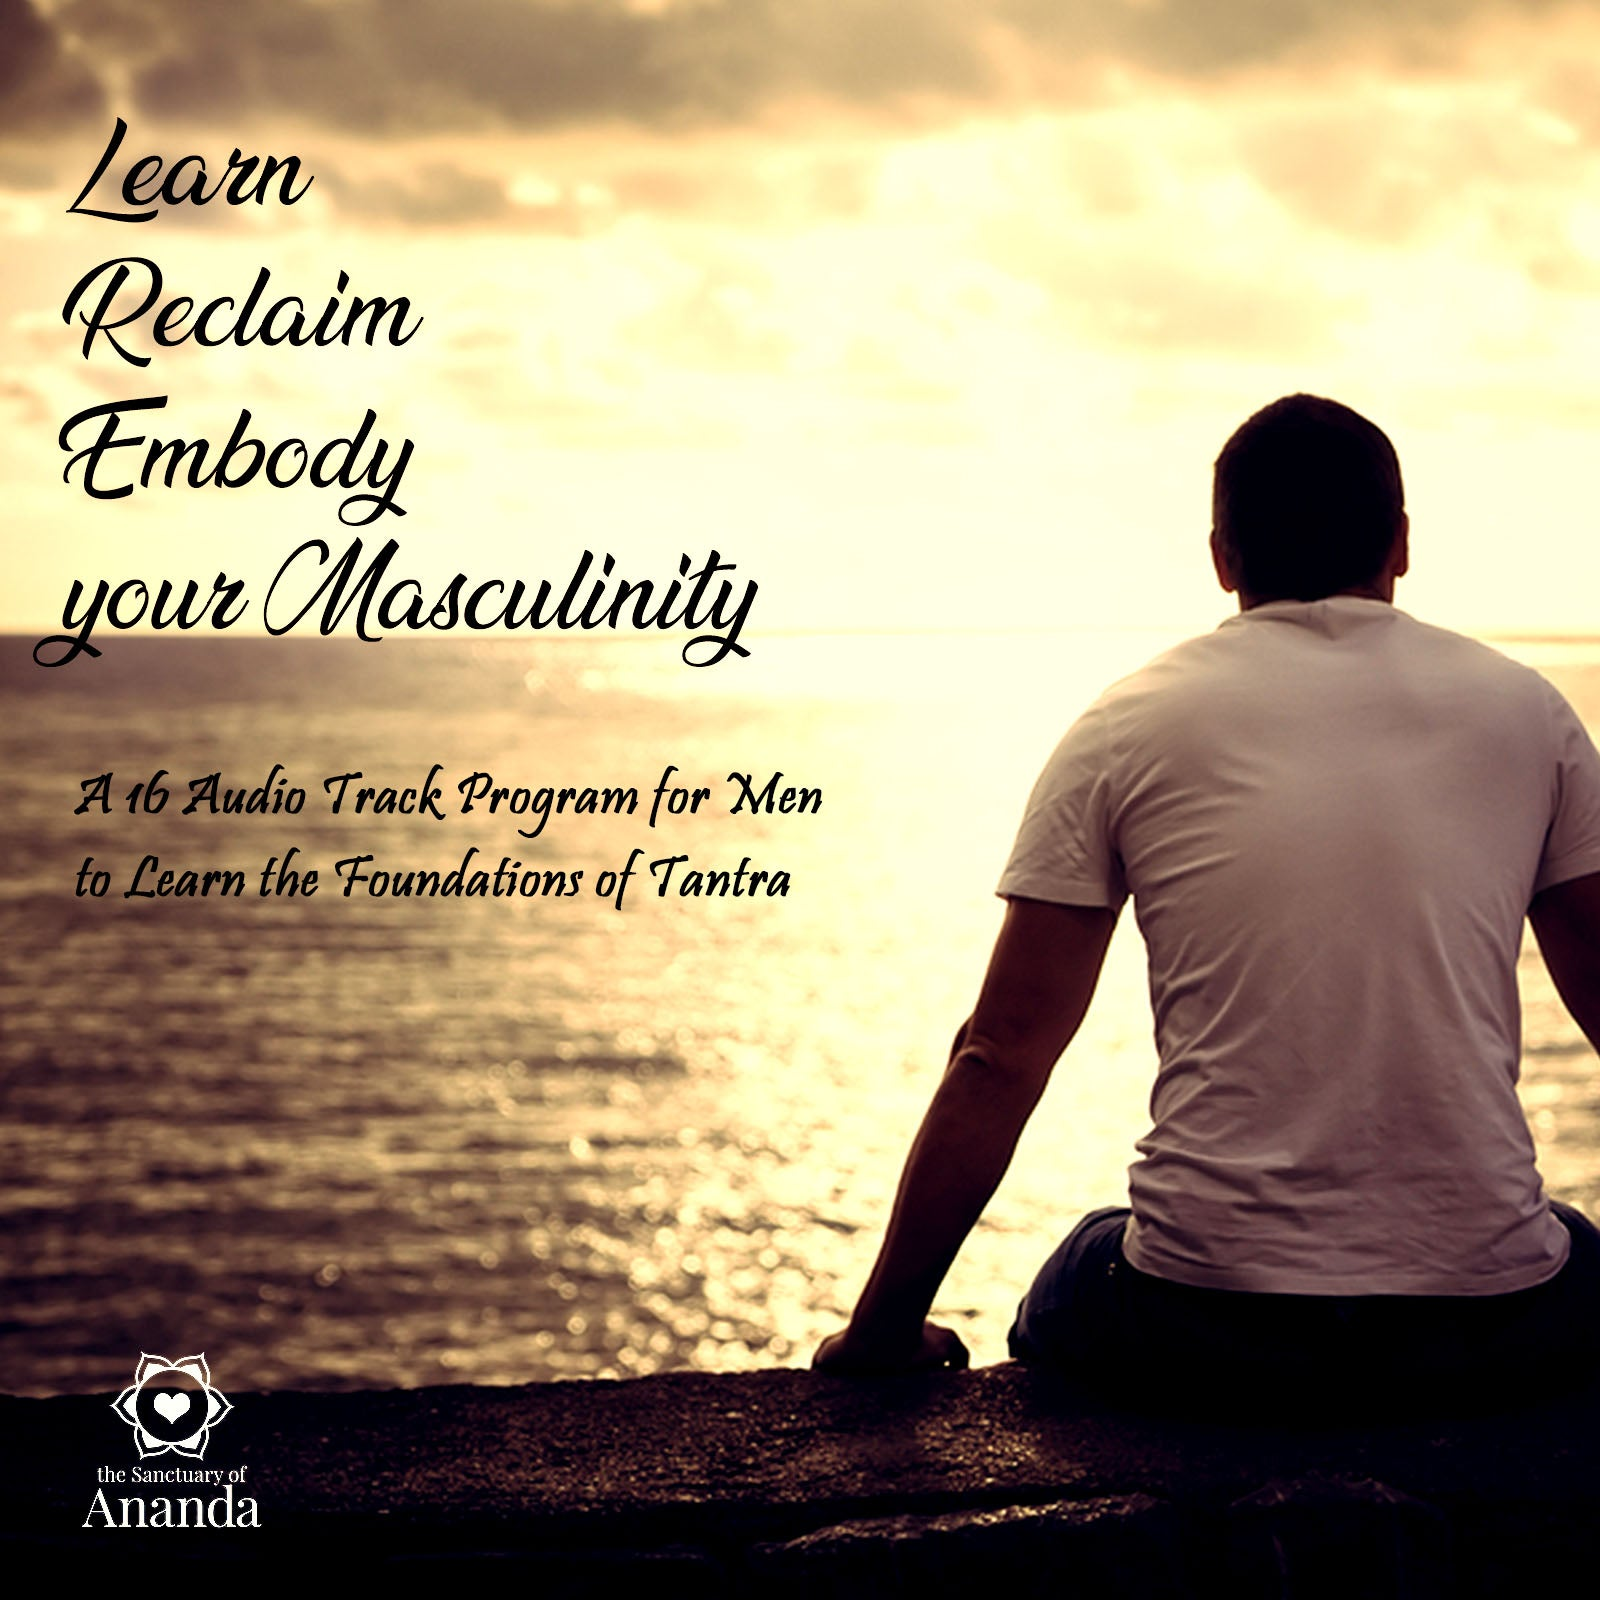 Men's Audio Program - Learn, Reclaim, Embody your Masculinity